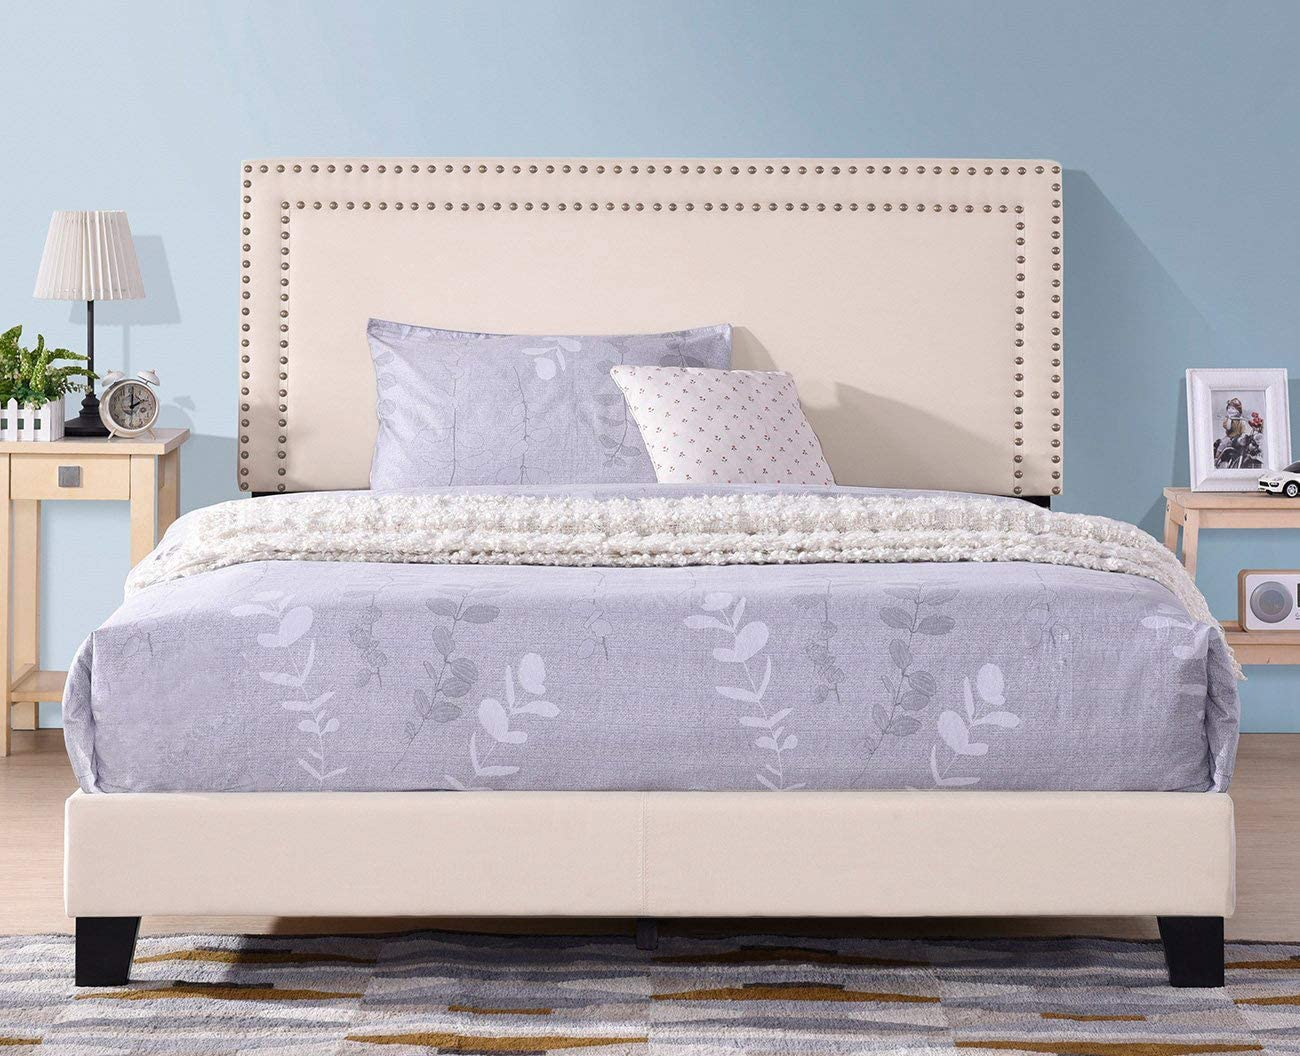 Upholstered Bed Frame Queen Size,JULYFOX Low Profile Platform Bed with 50 inch High Oxford Nailed Headboard Footboard Heavy Duty Box Spring Needed Contemporary Fabric Bed Frame-Beige